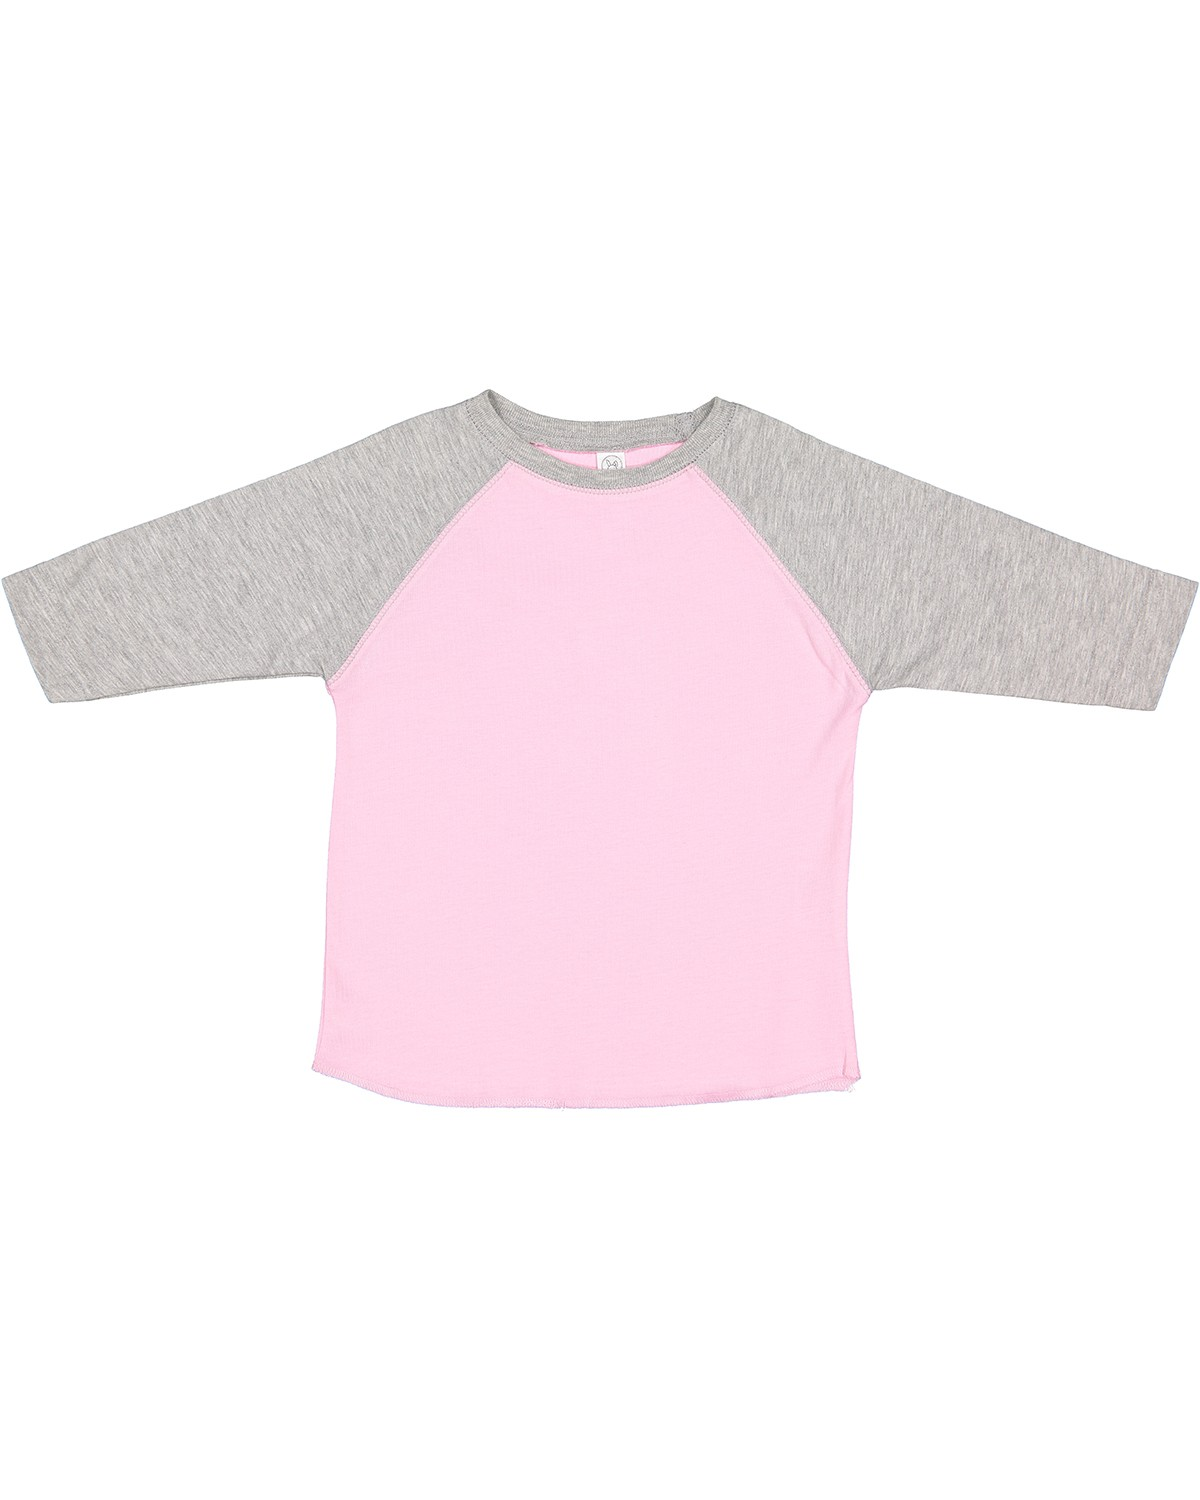 RS3330 Rabbit Skins PINK/VIN HTHR